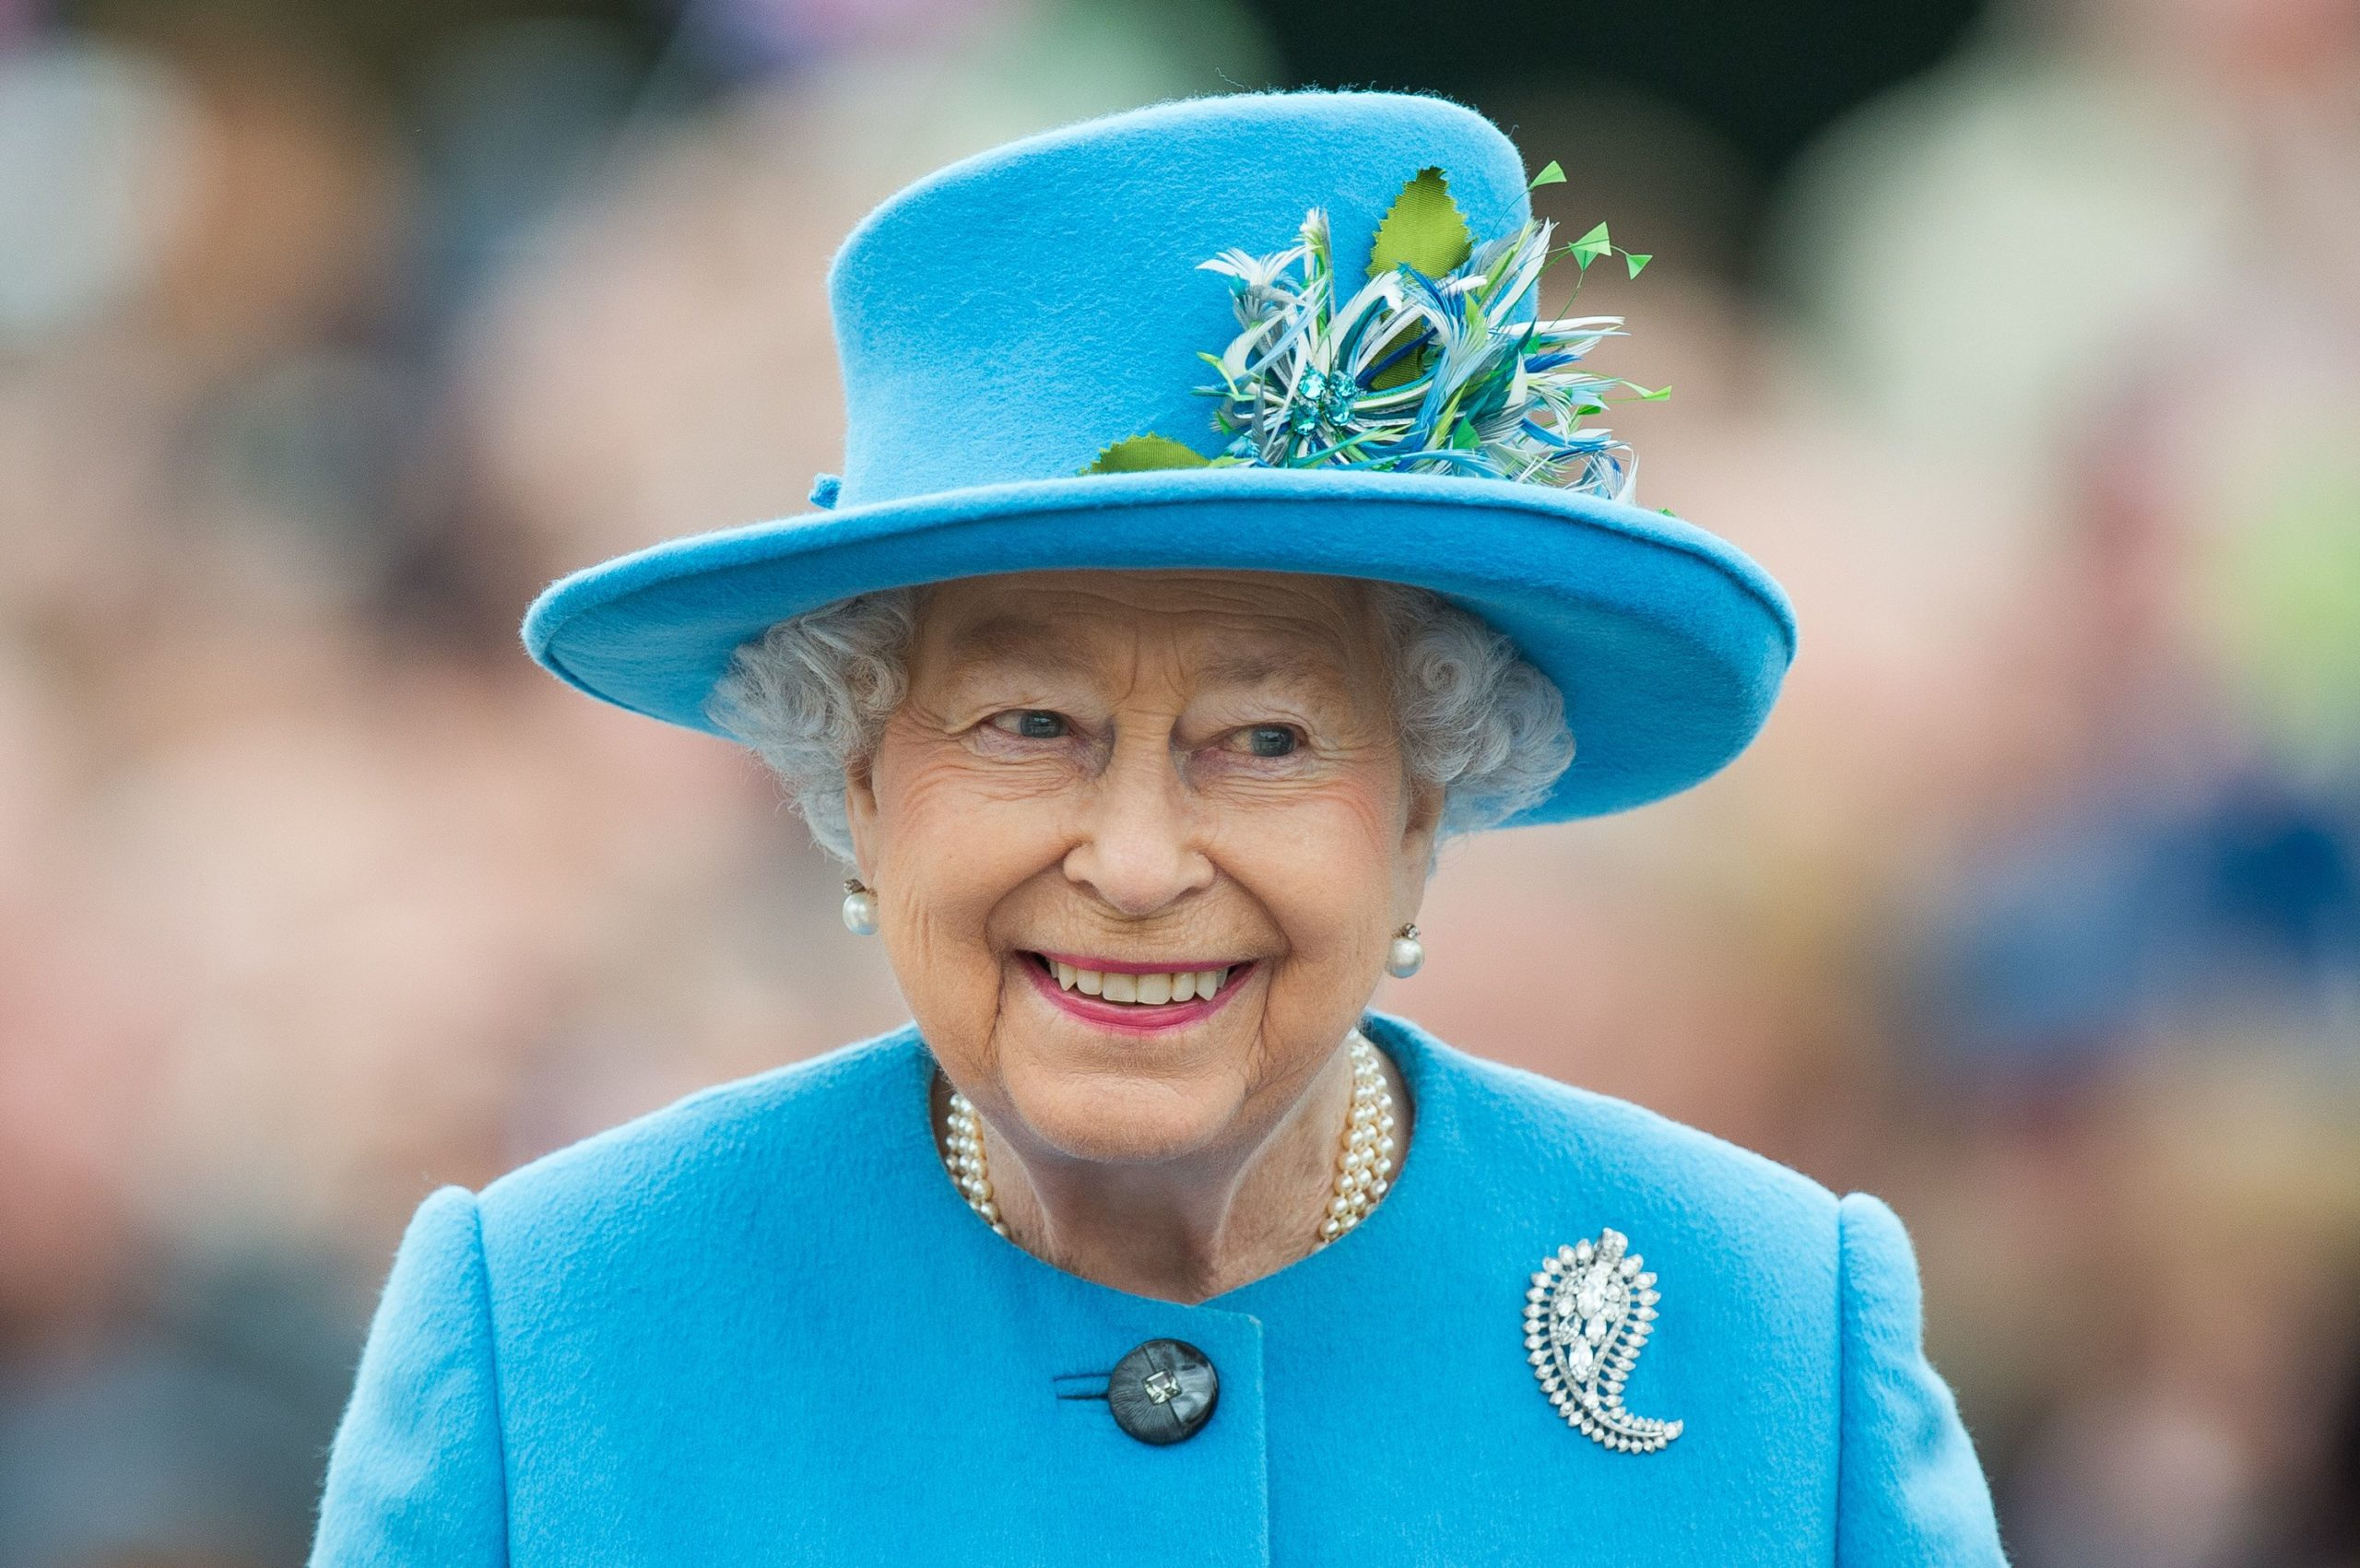 Queen Elizabeth can't continue Royal Duties in COVID-19 Pandemic